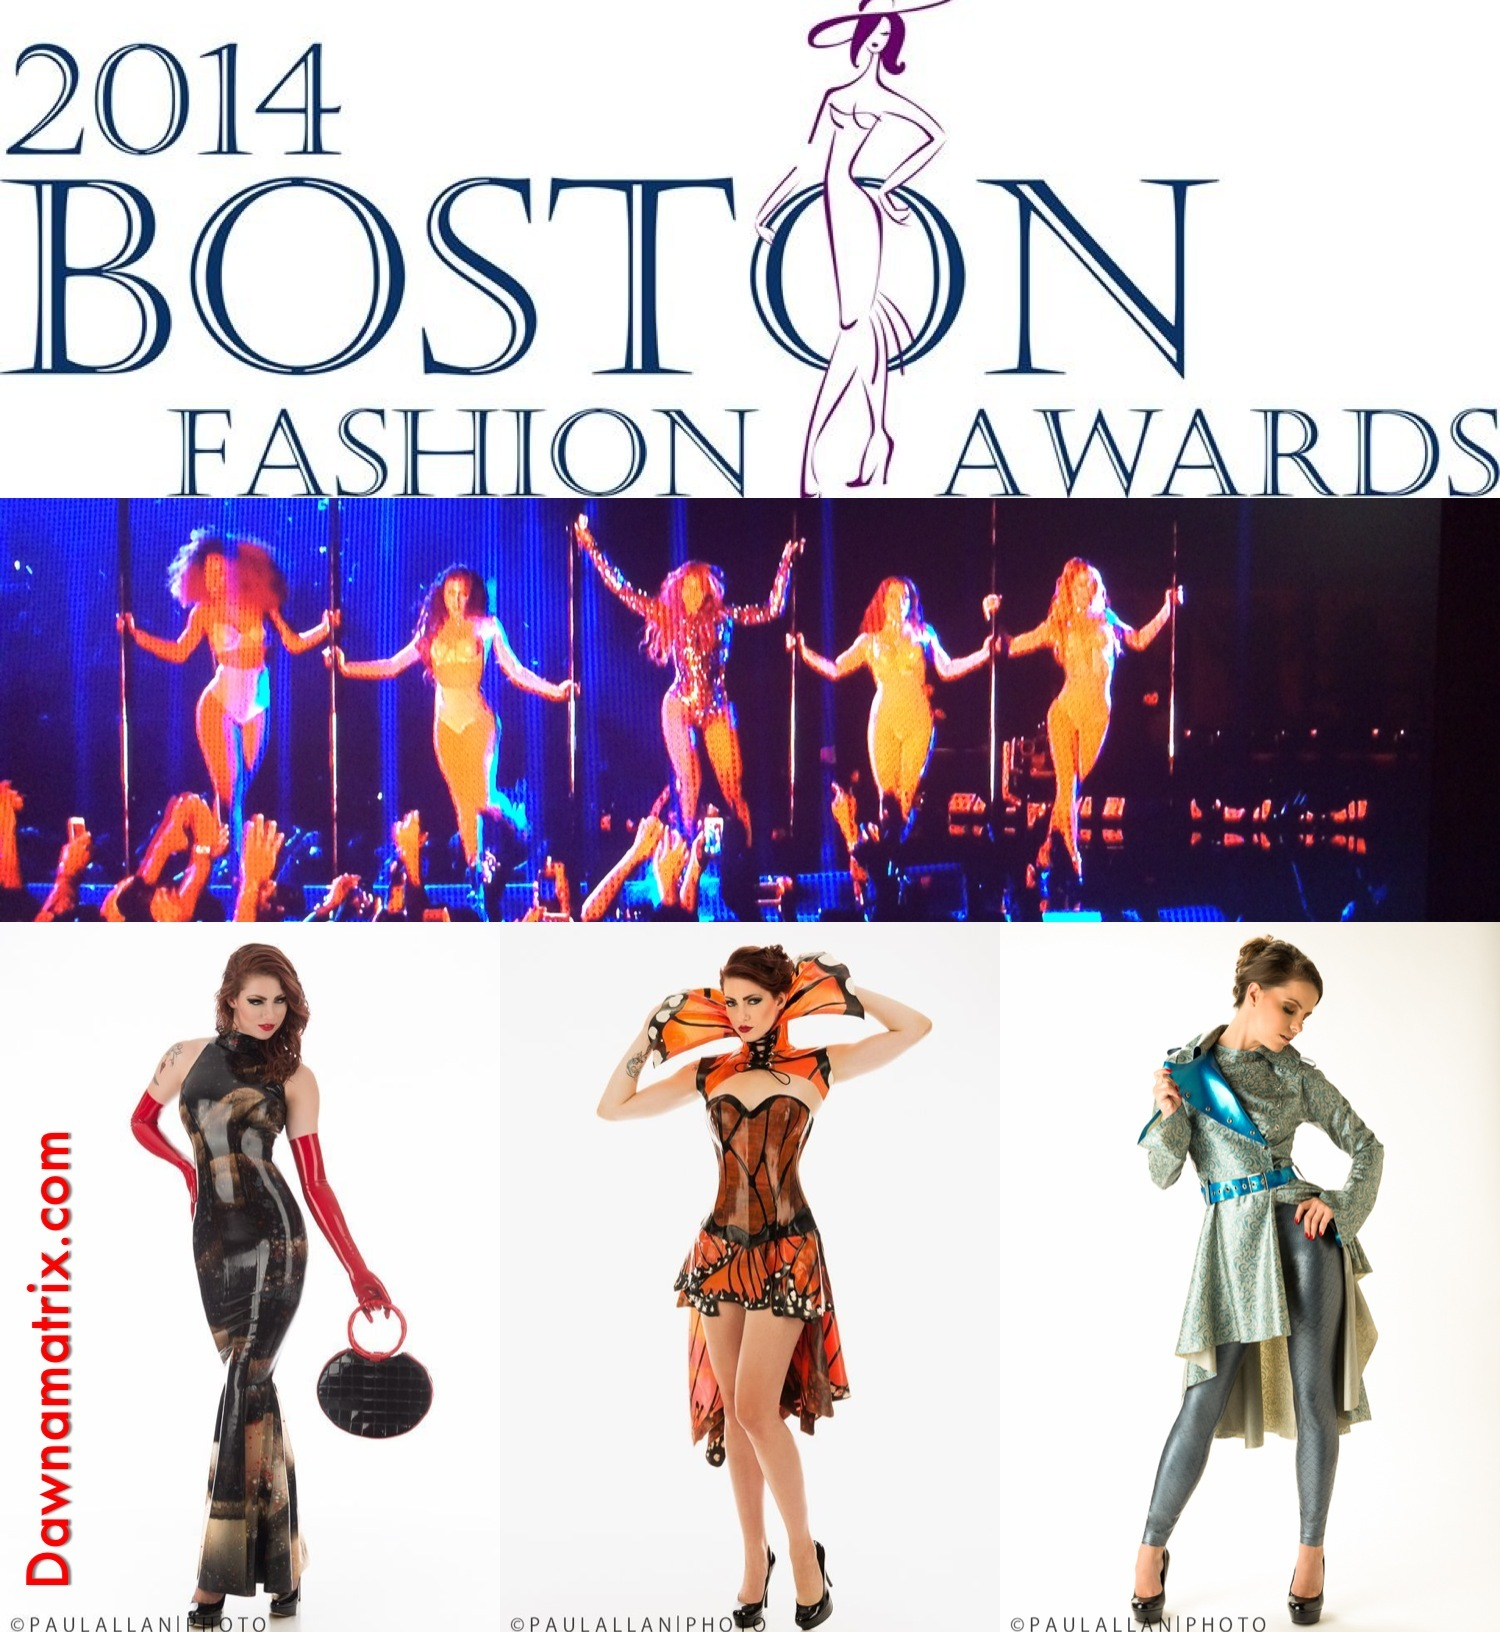 Dawnamatrix nominated for Designer of the Year in the Swimwear/Intimate category of the 2014 Boston Fashion Awards